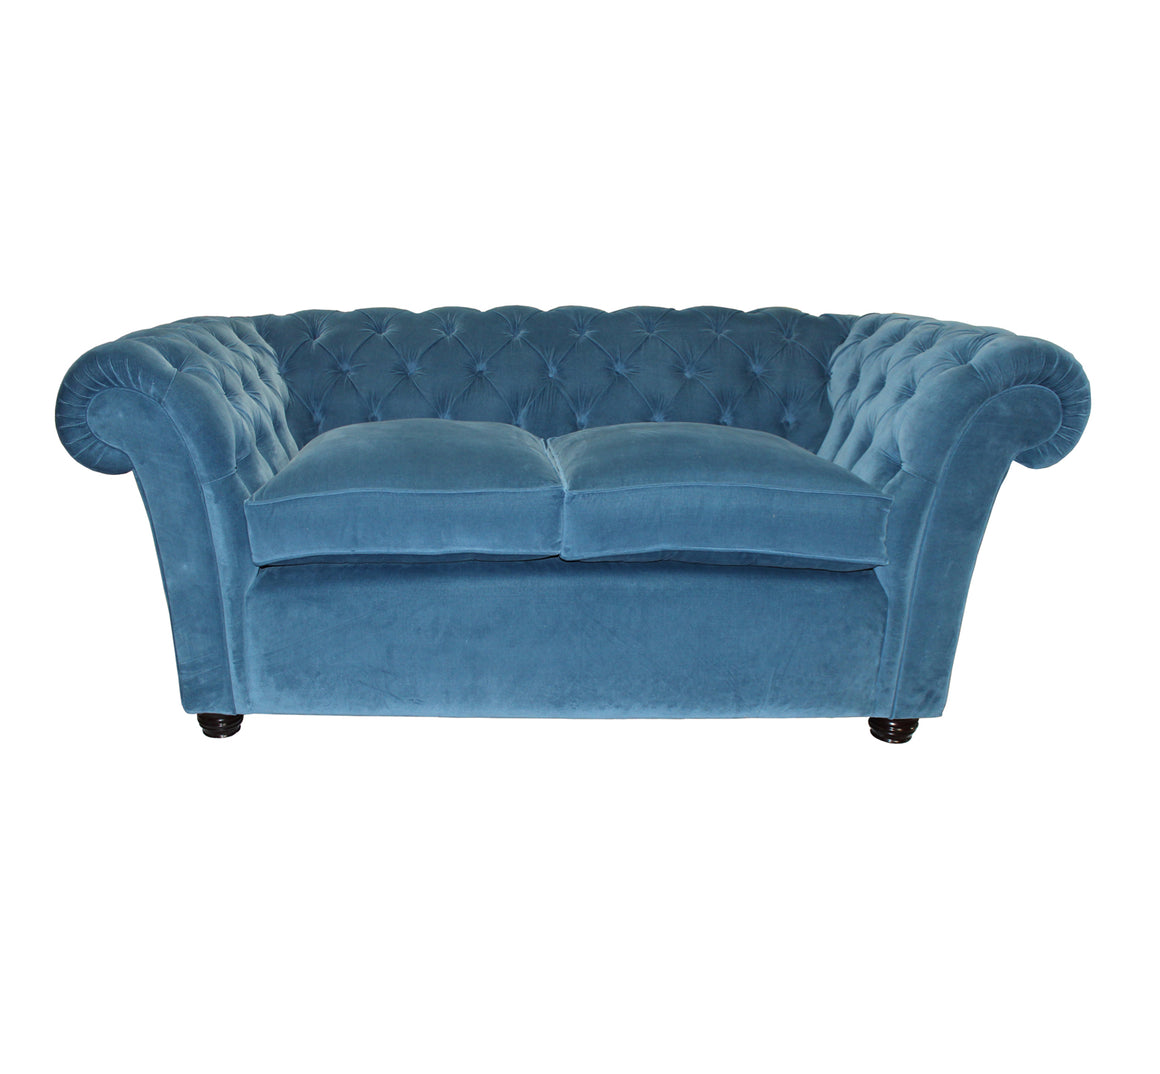 Blackheath Buttoned Chesterfield Sofas